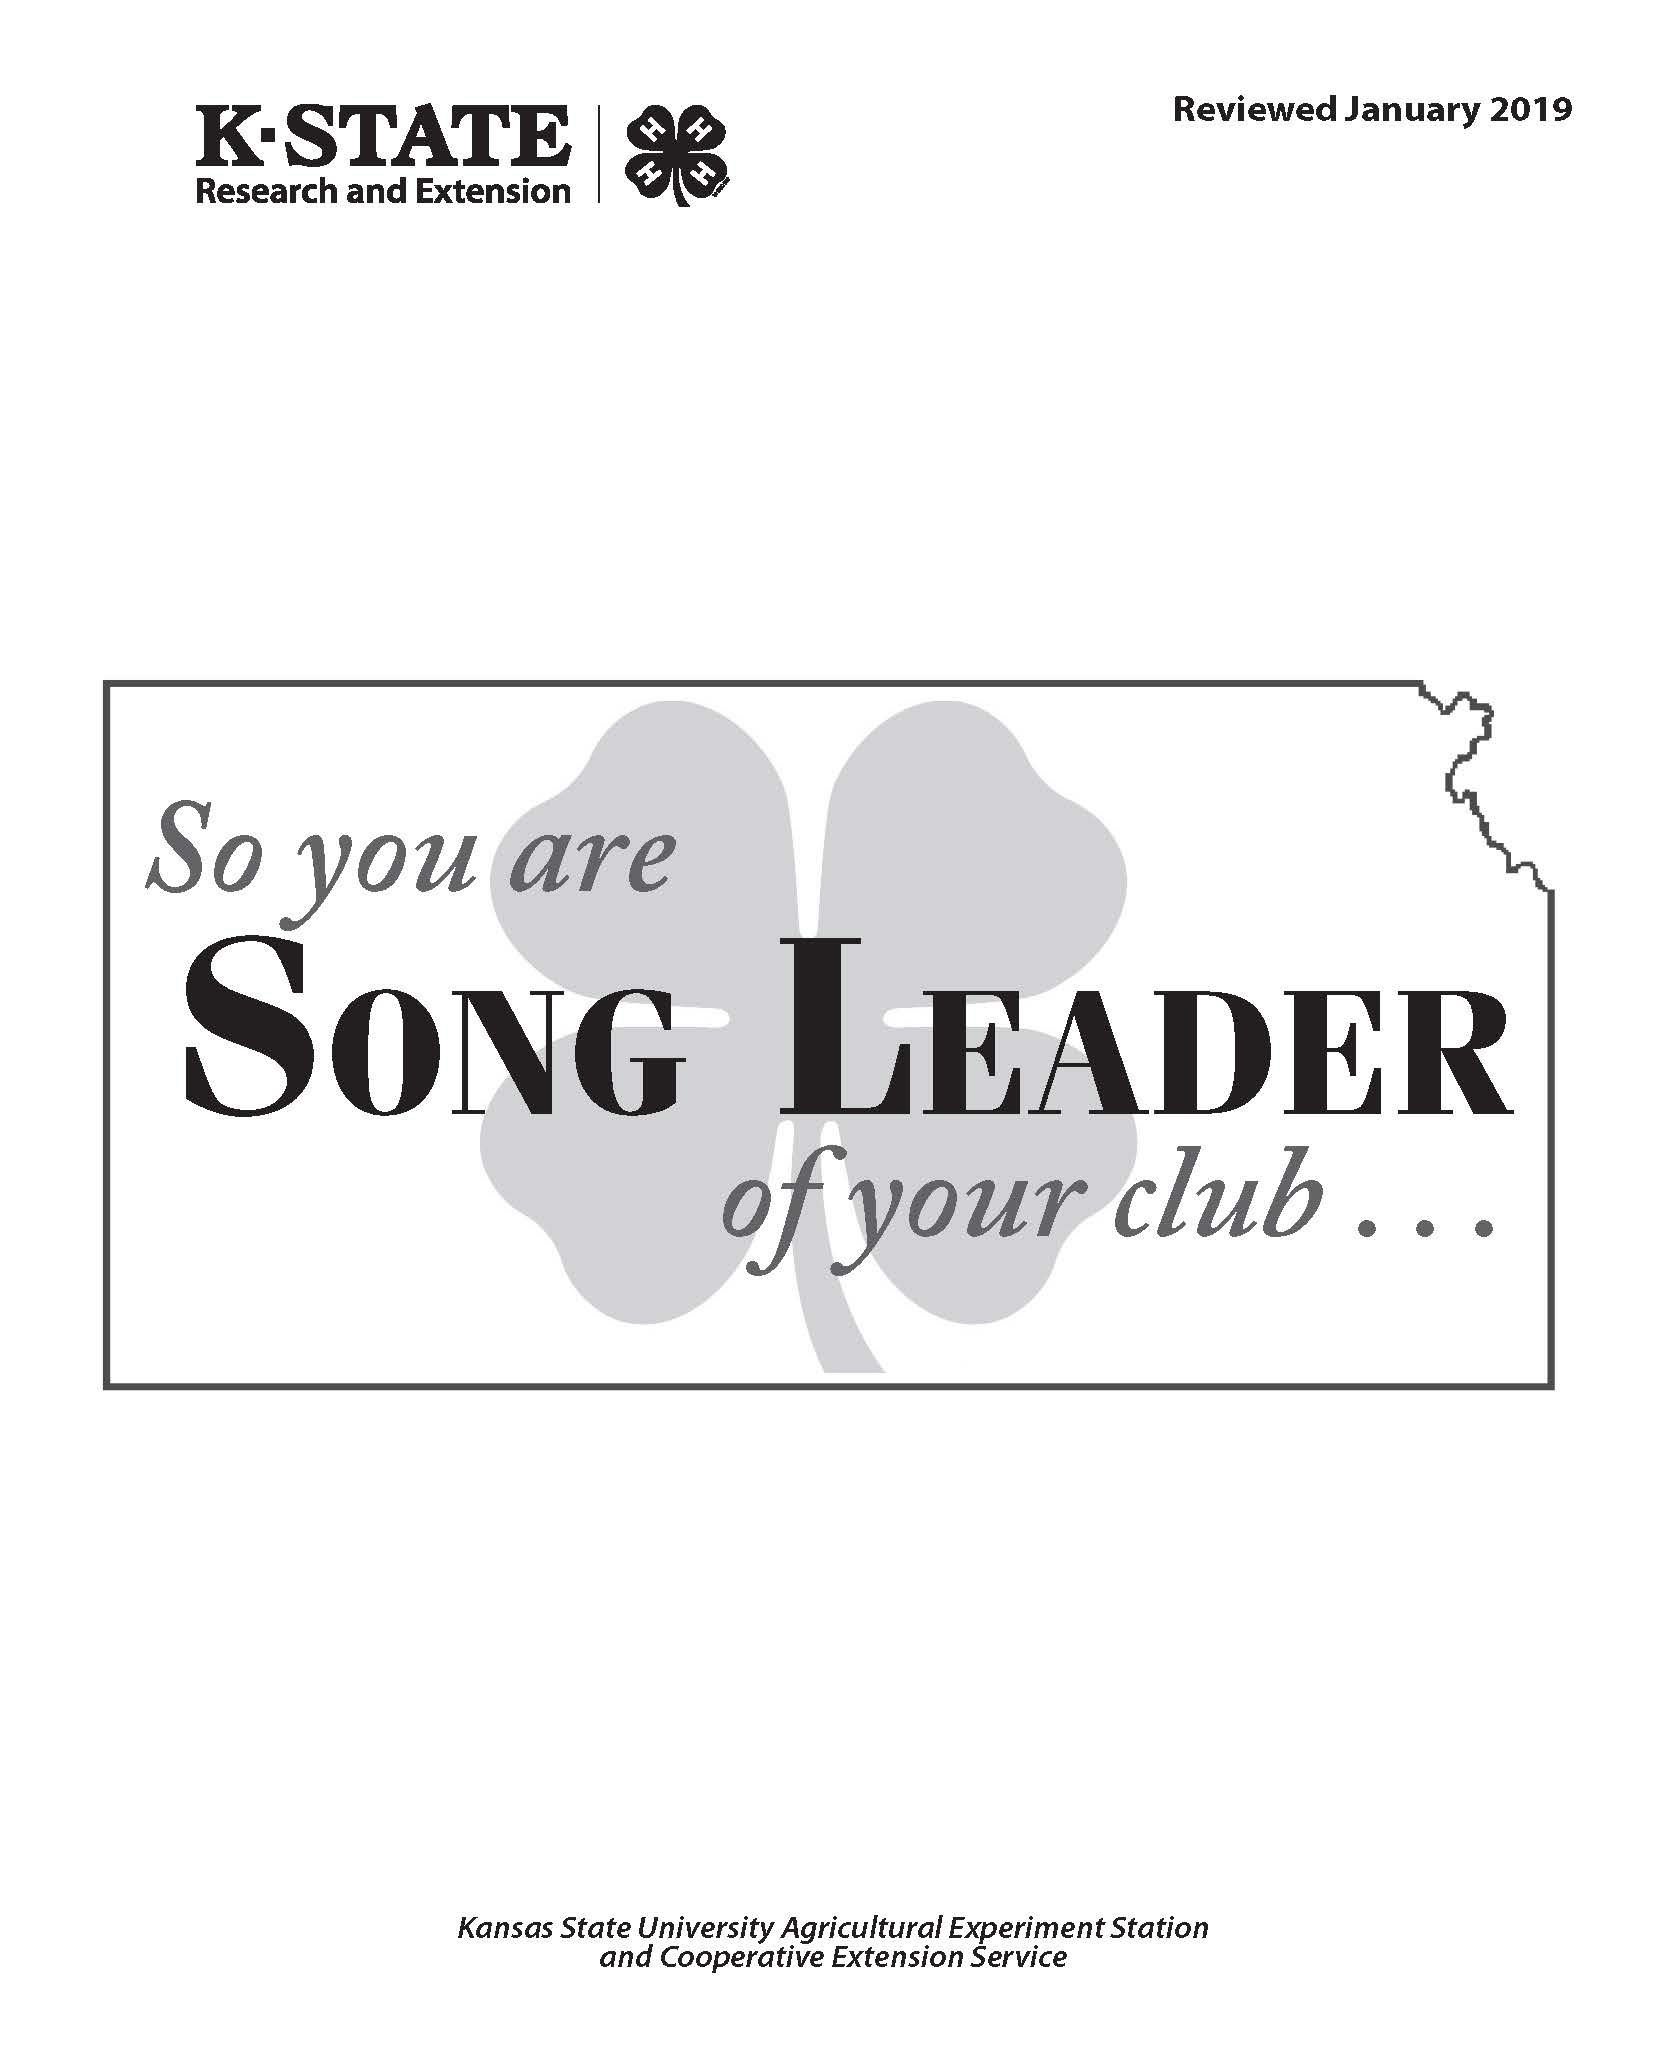 So you are the Song Leader of your club